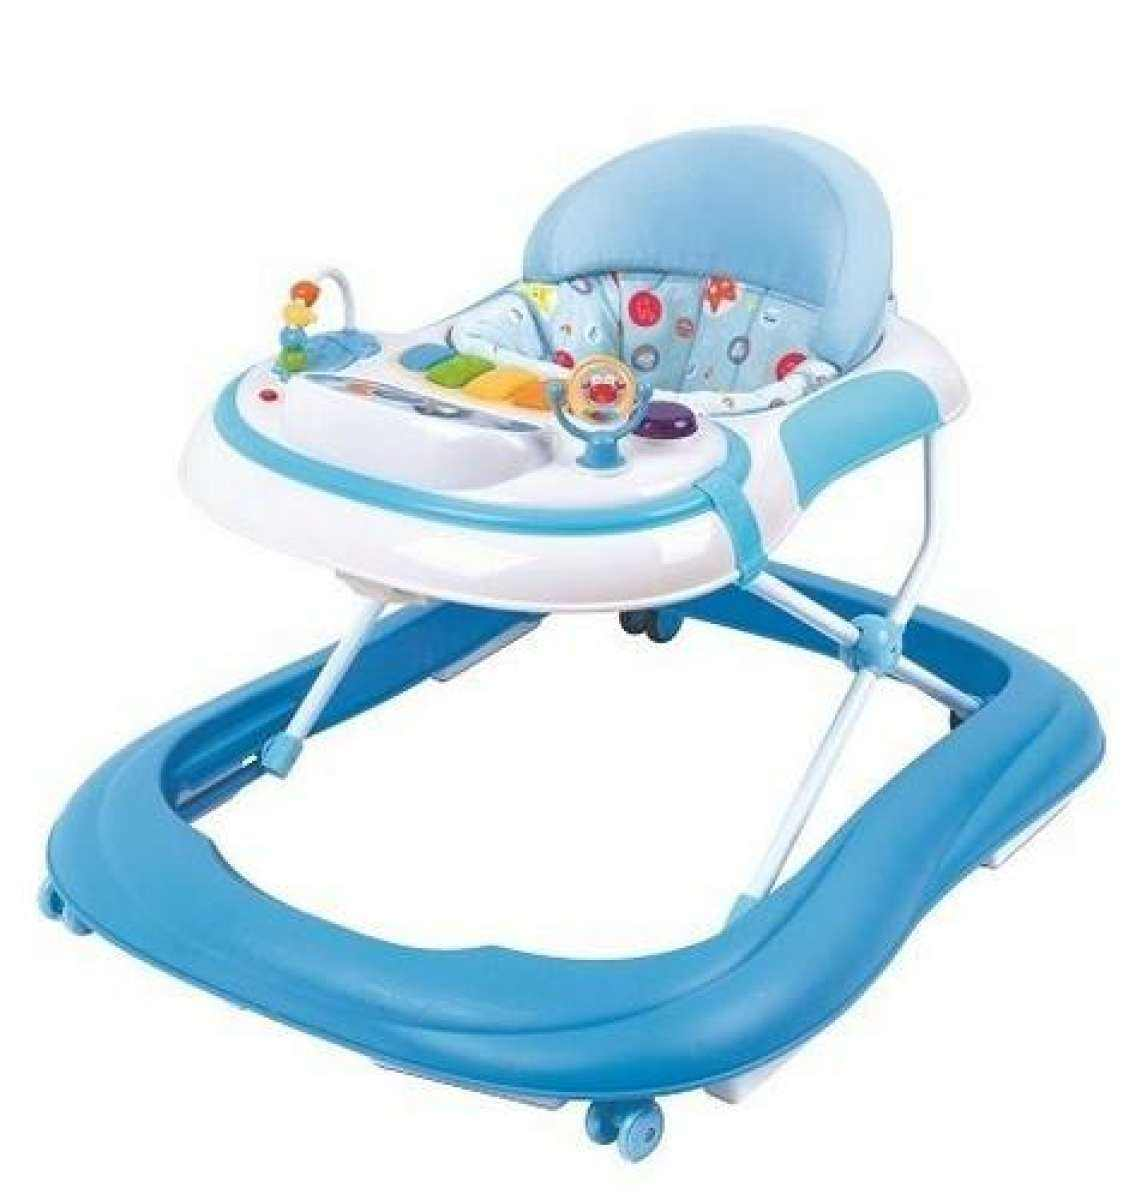 Baby Walker For Kids-High Quality With Music Blue